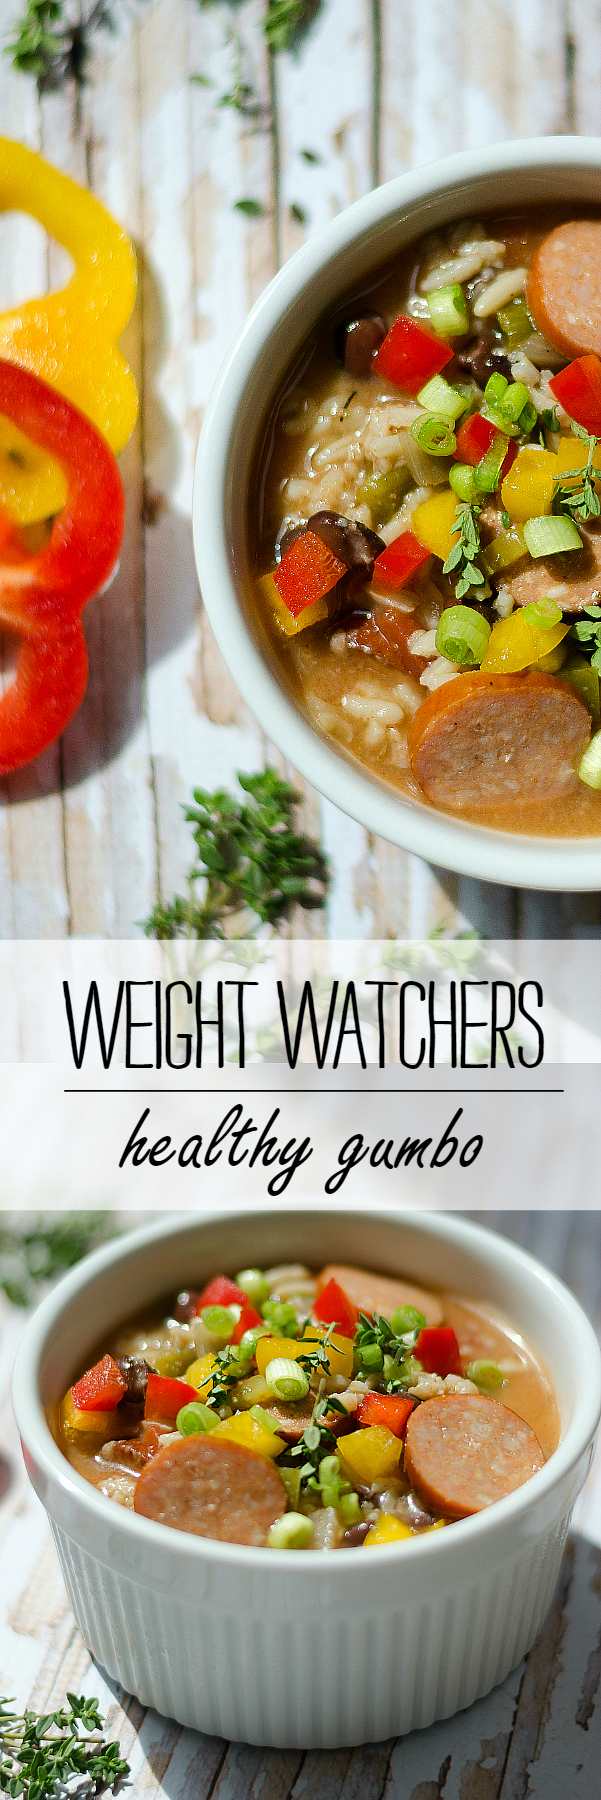 Gumbo Weight Watchers Recipe Ideas